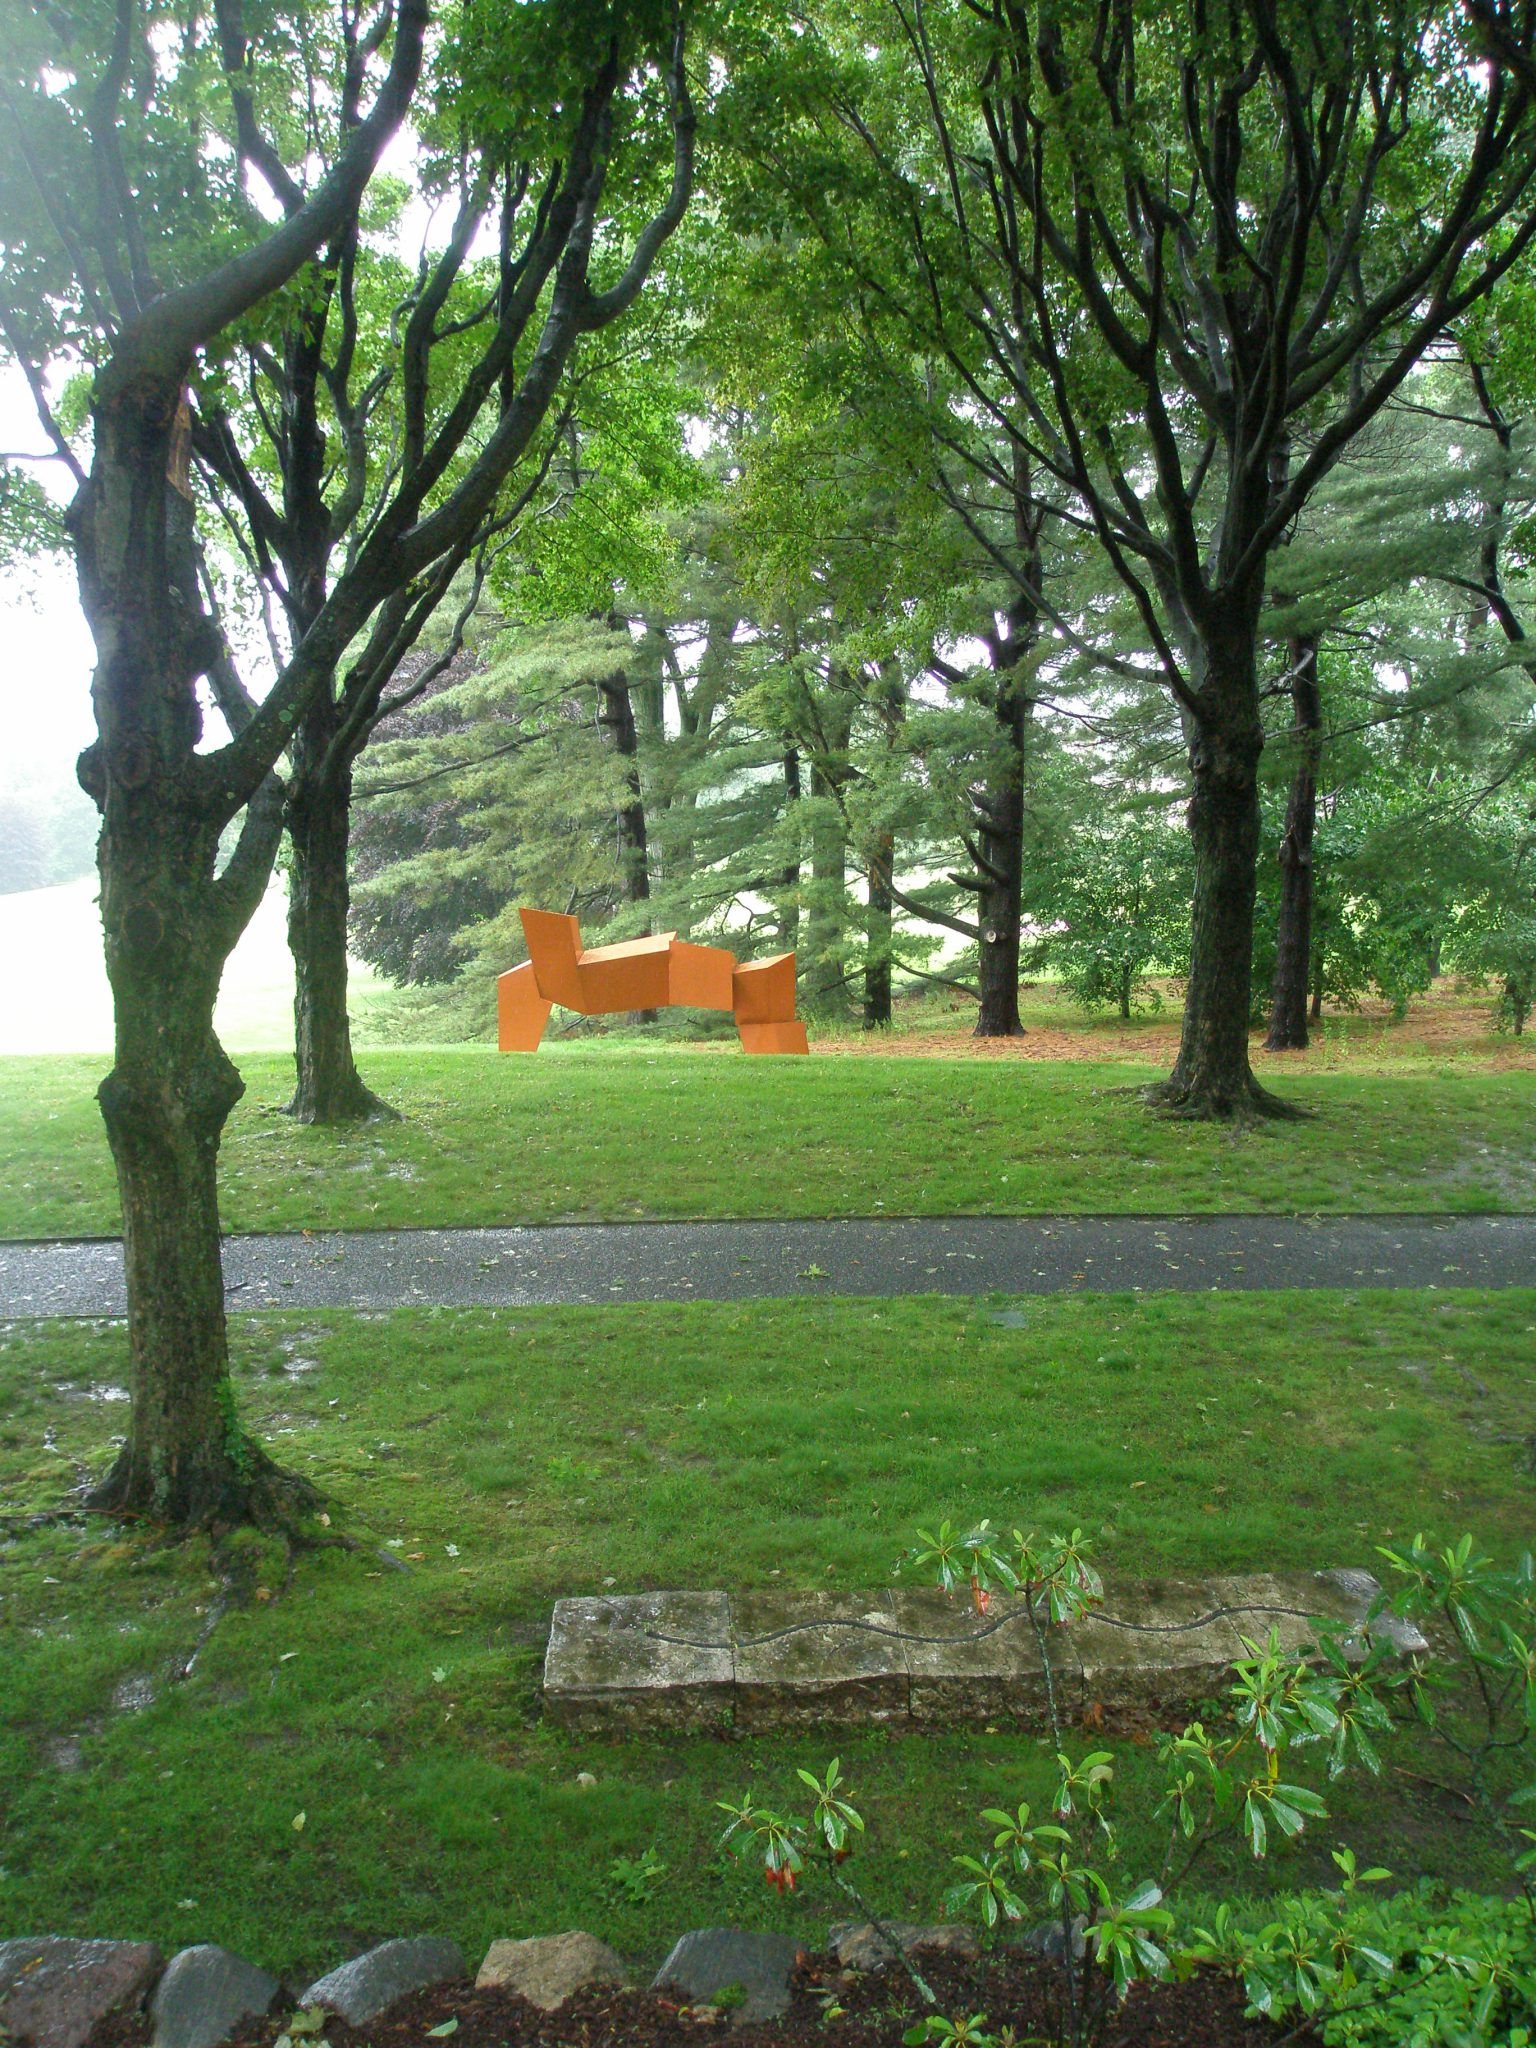 Further along the Maple Walk is James Rosati's LIPPINCOTT II (1965-69); painted, cor-ten steel.